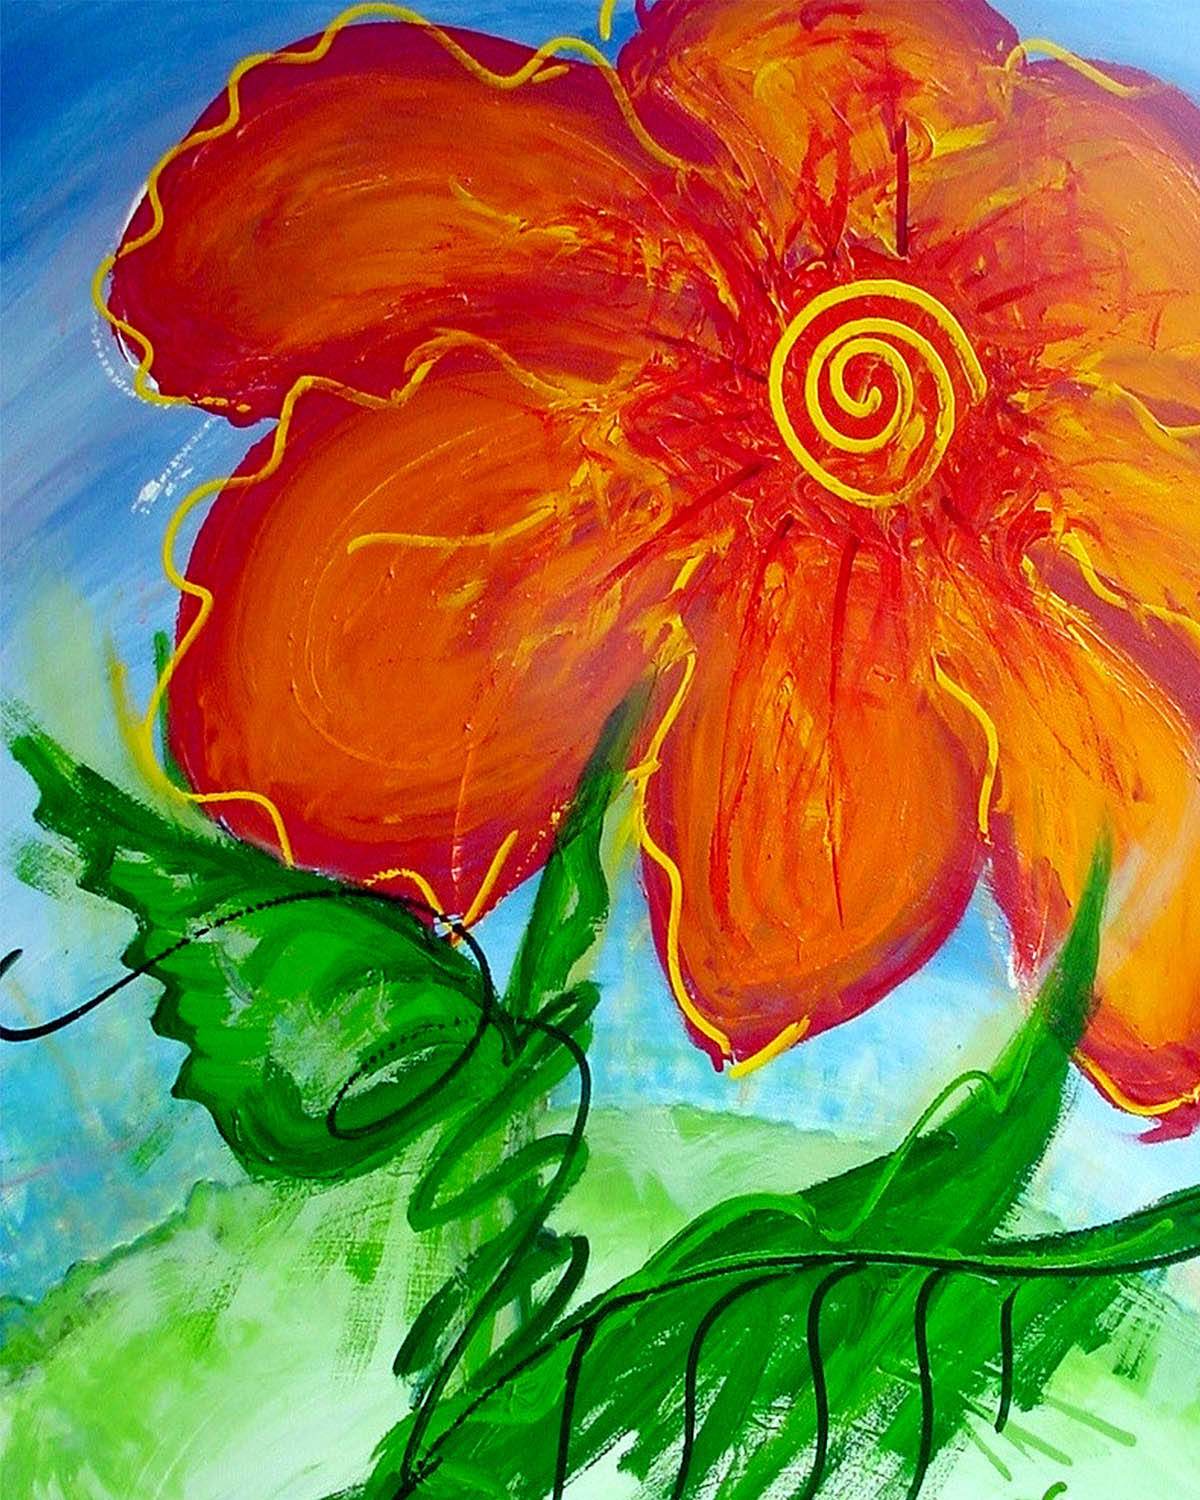 Passion, Original Abstract Flower Art Painting by Lisa Marie Jones